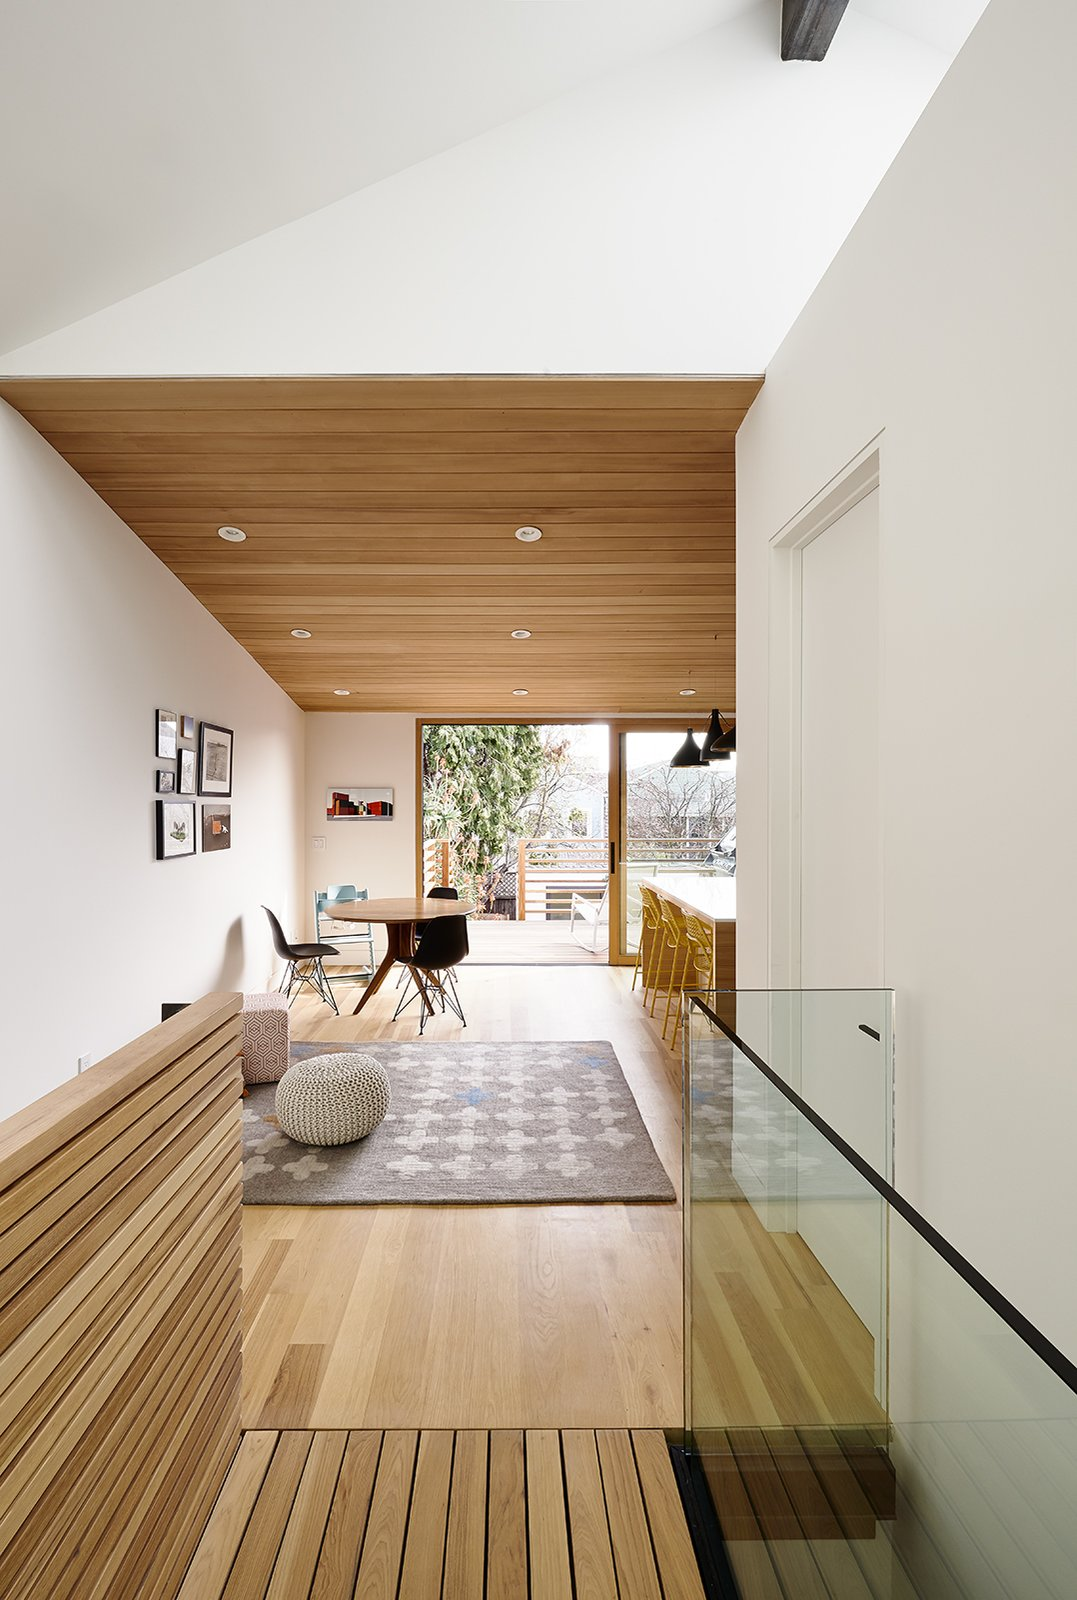 Red Dot Studio rehabbed a historically designated 1890 cottage Tagged: Light Hardwood Floor and Dining Room.  Best Photos from A Renovated Tiny Victorian with 21st-Century Interiors